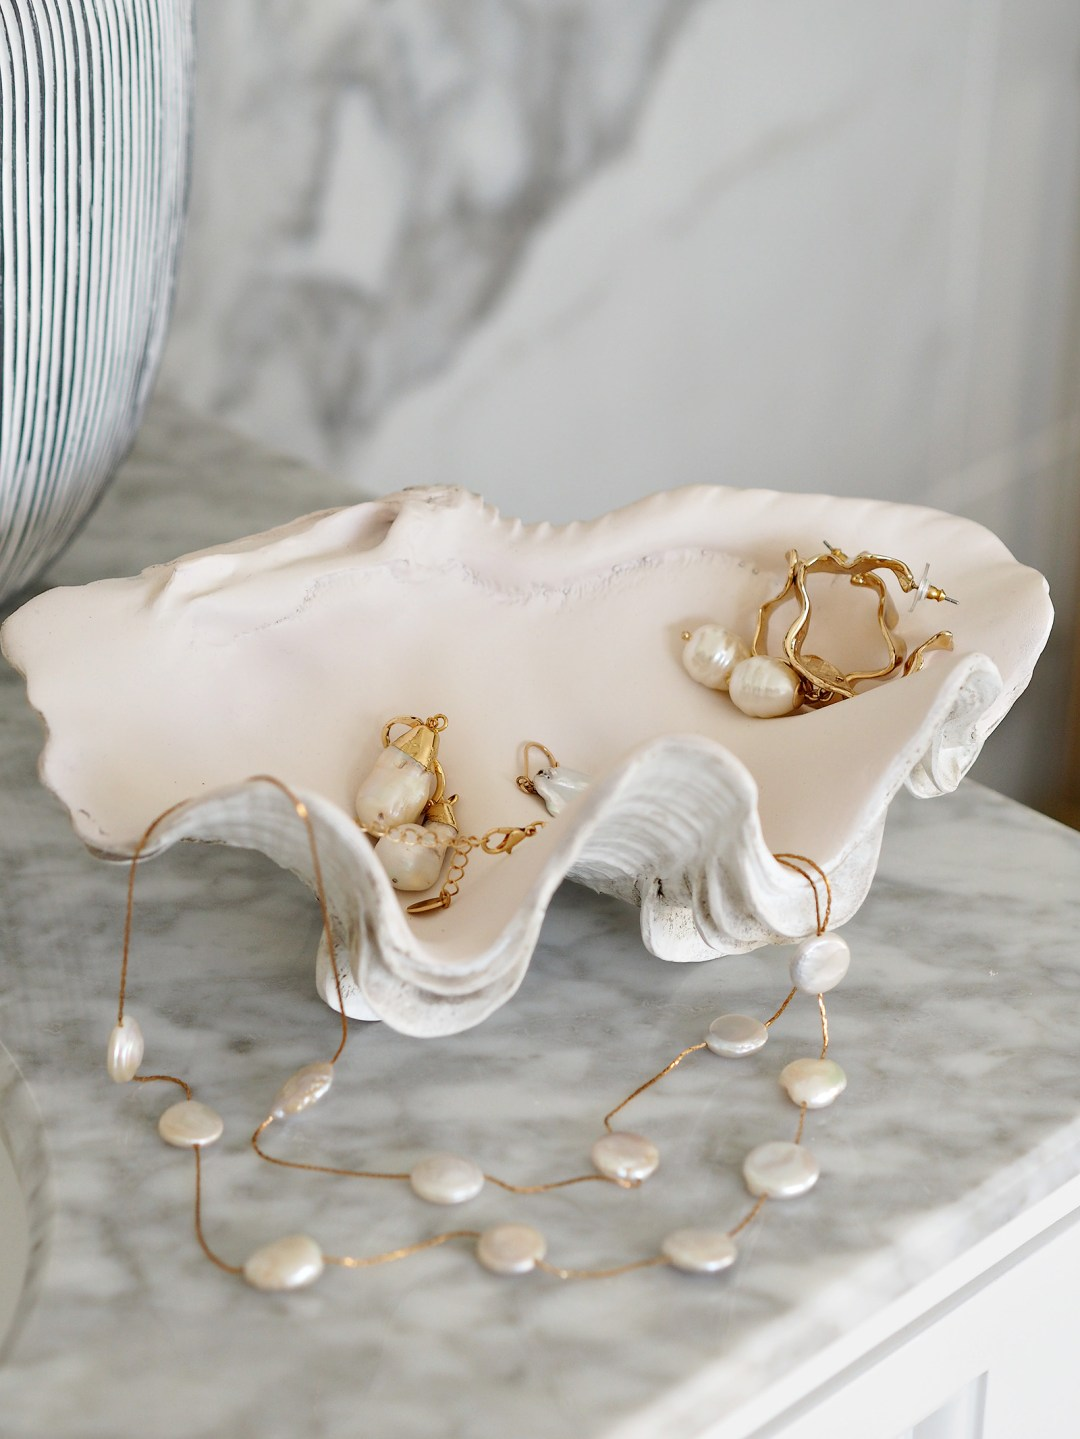 Faux Giant Clam Shell